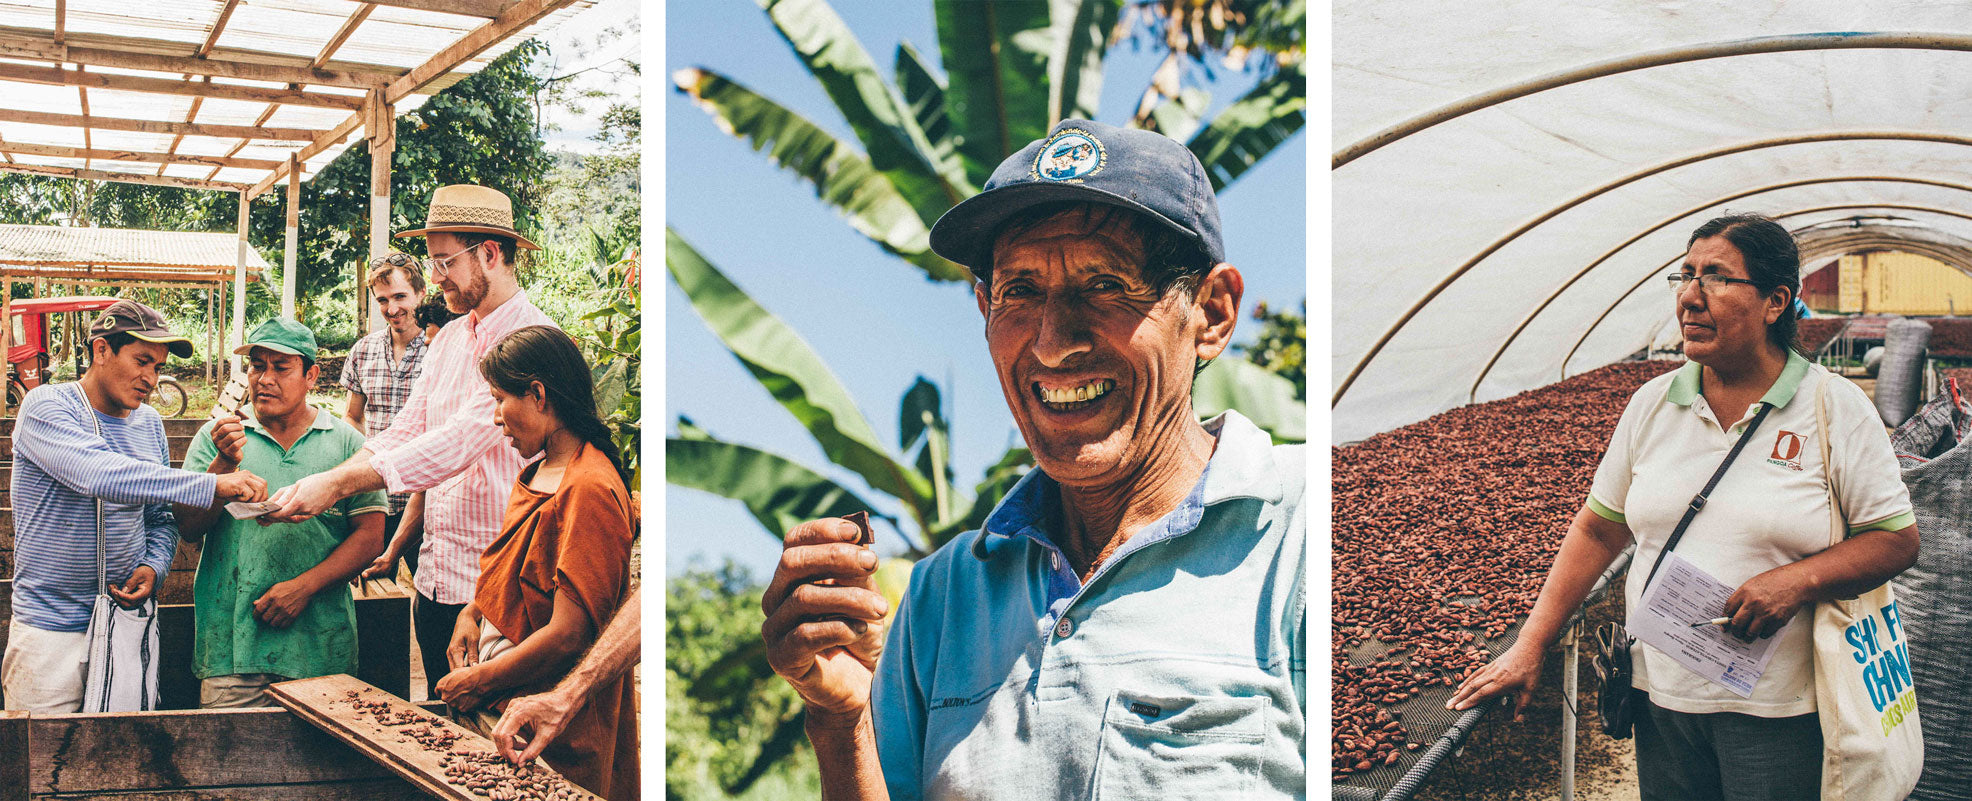 Raaka's Transparent Trade sourcing model. Head Chocolate Maker and co-founder Nate Hodge sharing chocolate with cocoa growers and producers in Peru. Baleriamo B'ordora Muñoz', a cacao farmer in Peru, enjoying a Raaka Chocolate bar. A portrait Esperanza Dionisio, cooperative director of CAC Pangoa.